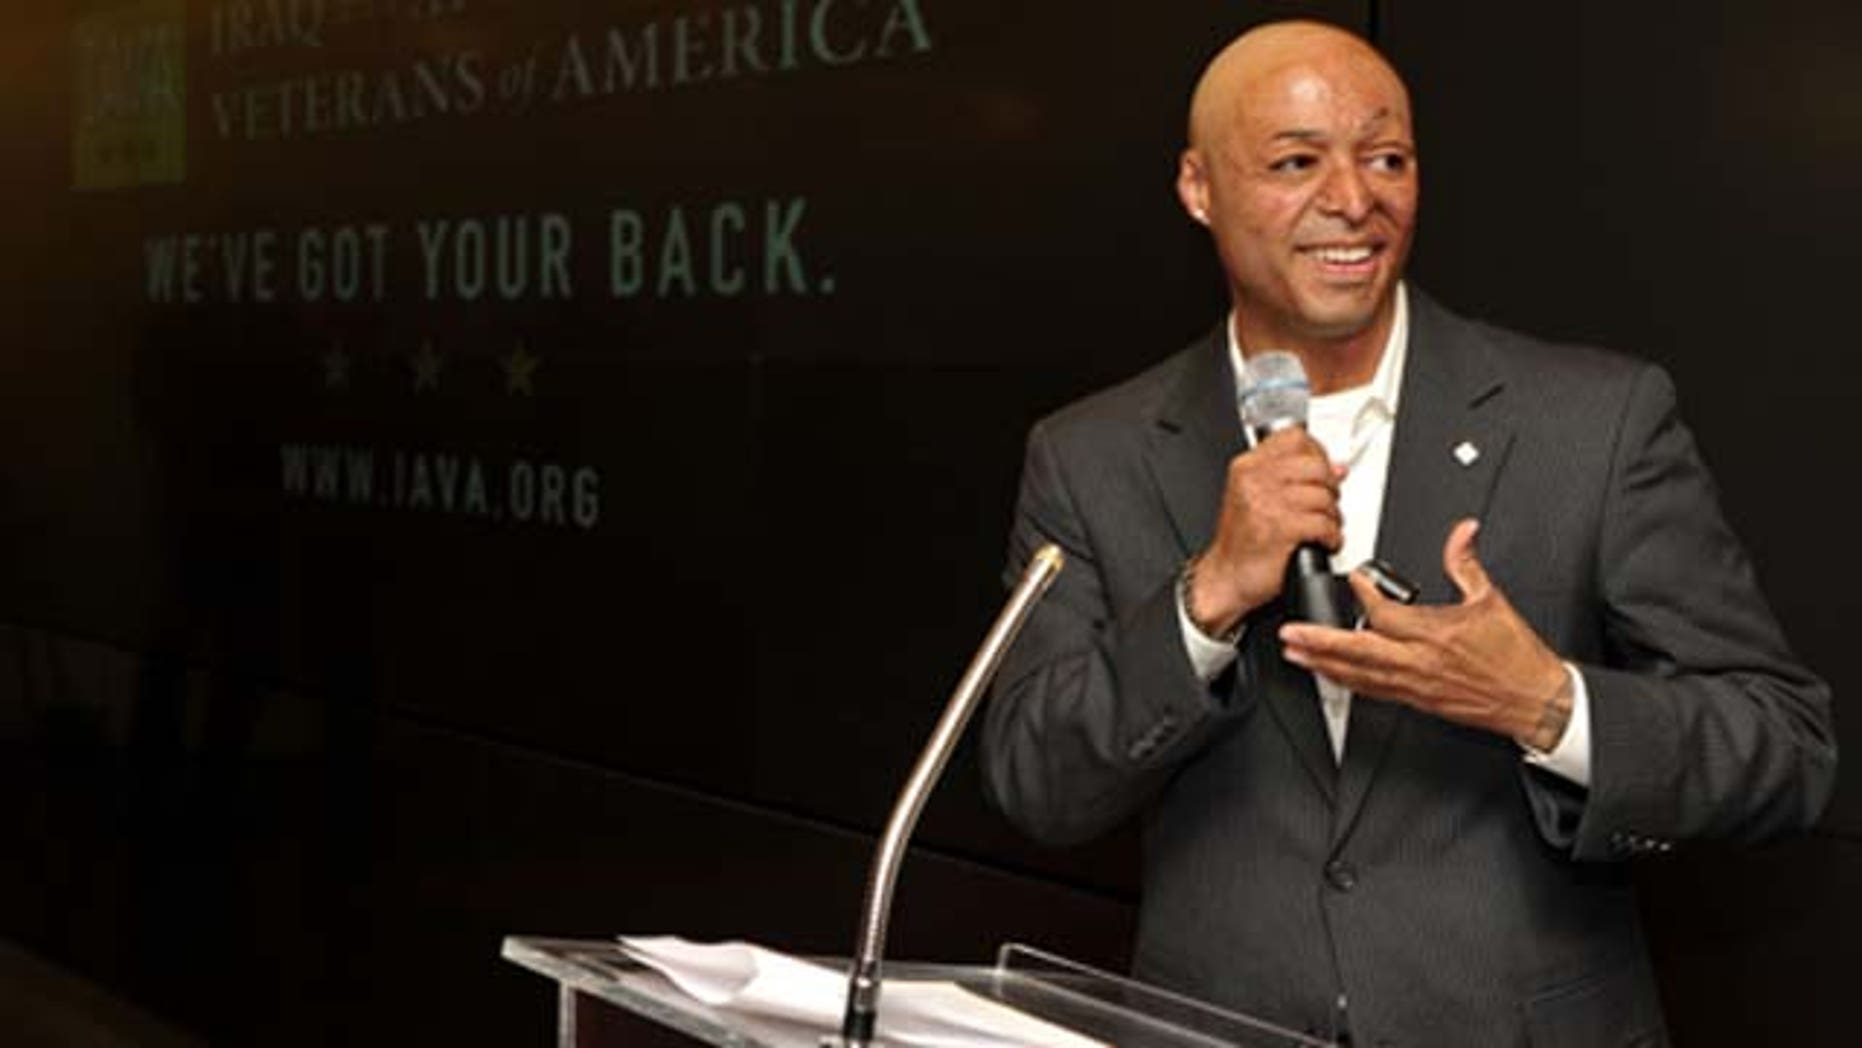 April 29, 2010: Actor J.R. Martínez speaks at IAVA's Second Annual Heroes Celebration held at CAA in Los Angeles, Calif.